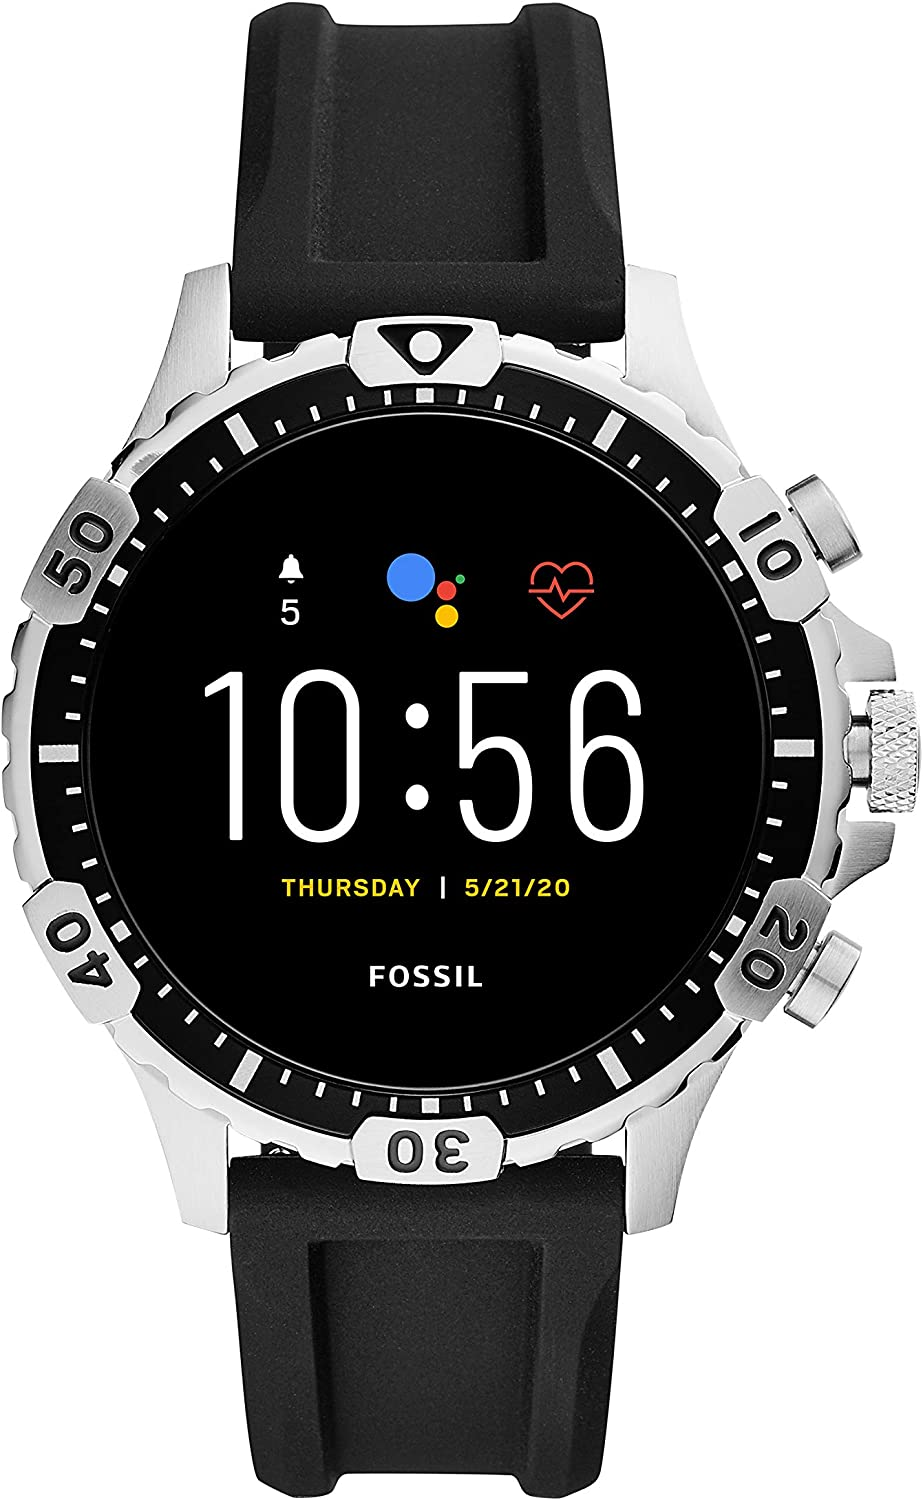 Fossil Gen 5 Garrett Stainless Steel Touchscreen Smartwatch with Speaker, Heart Rate, GPS, NFC, and Smartphone Notifications